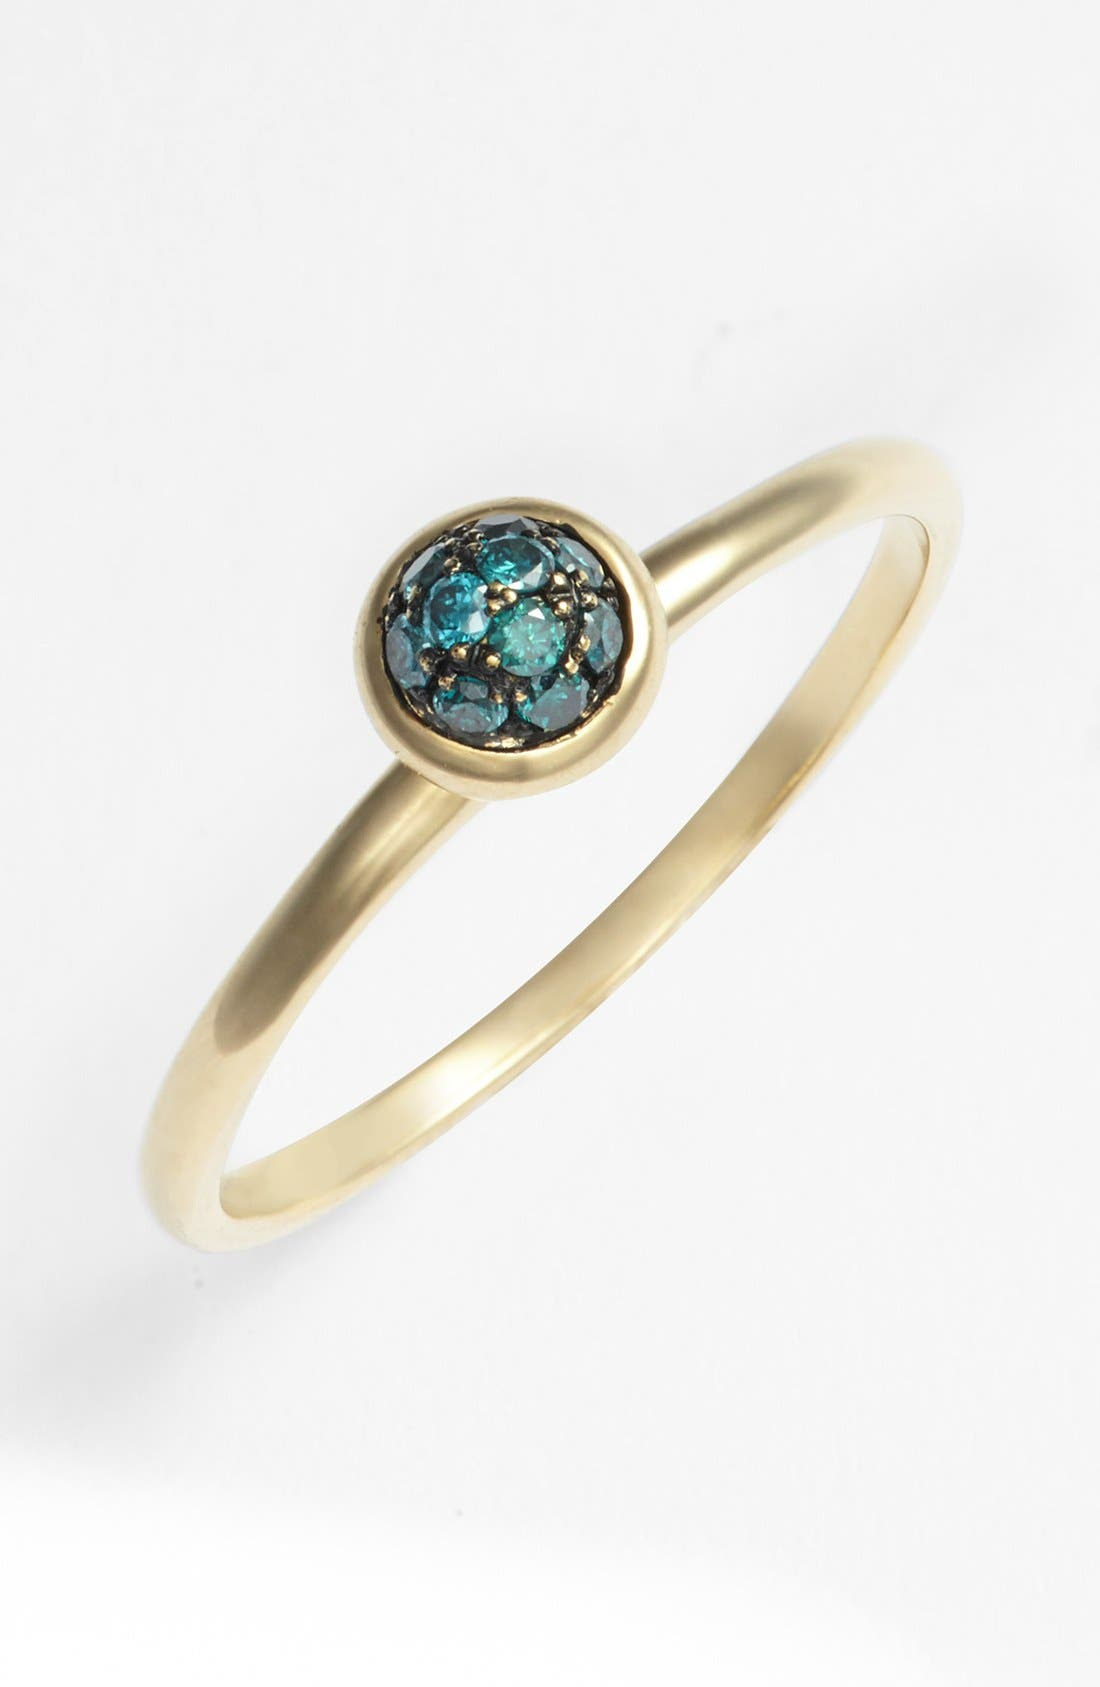 Main Image - Syna 'Baubles' Blue Diamond Ring